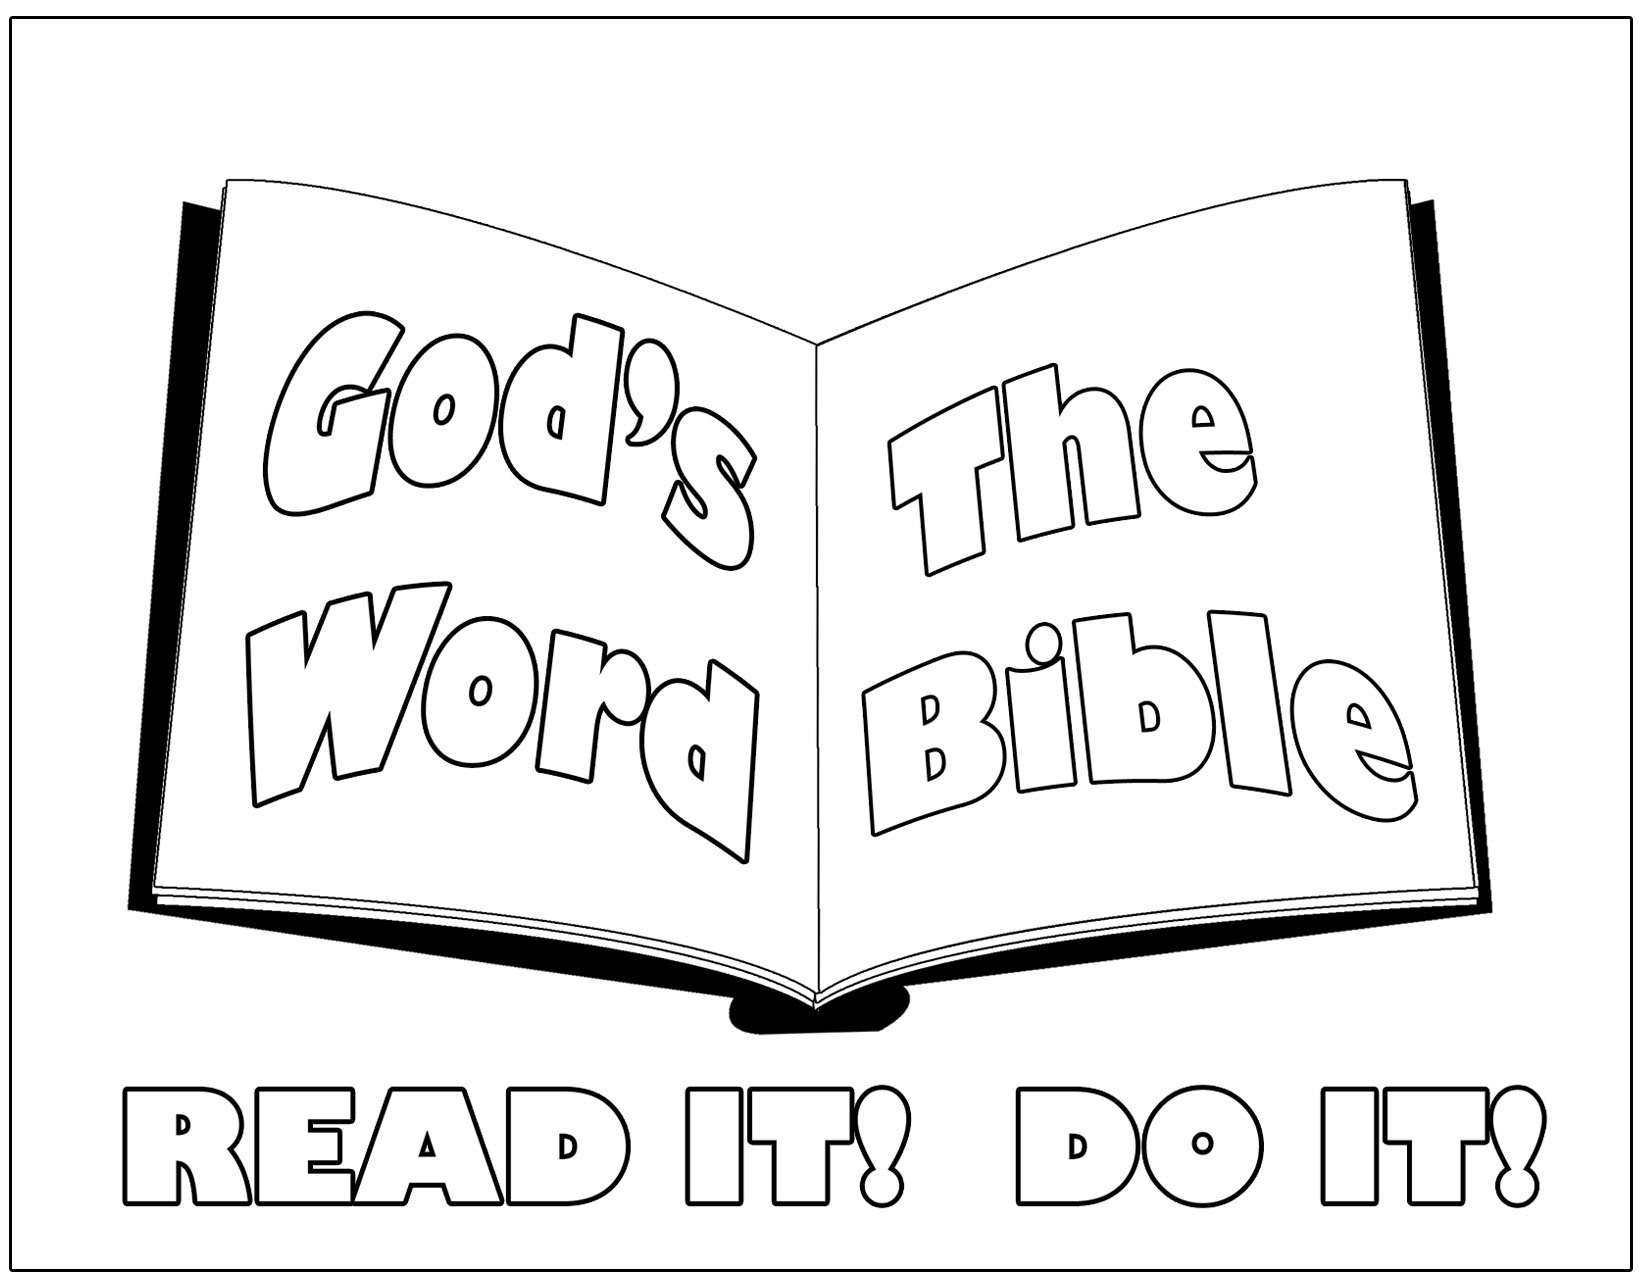 free printable bible coloring pages for kids - Books Bible Coloring Pages